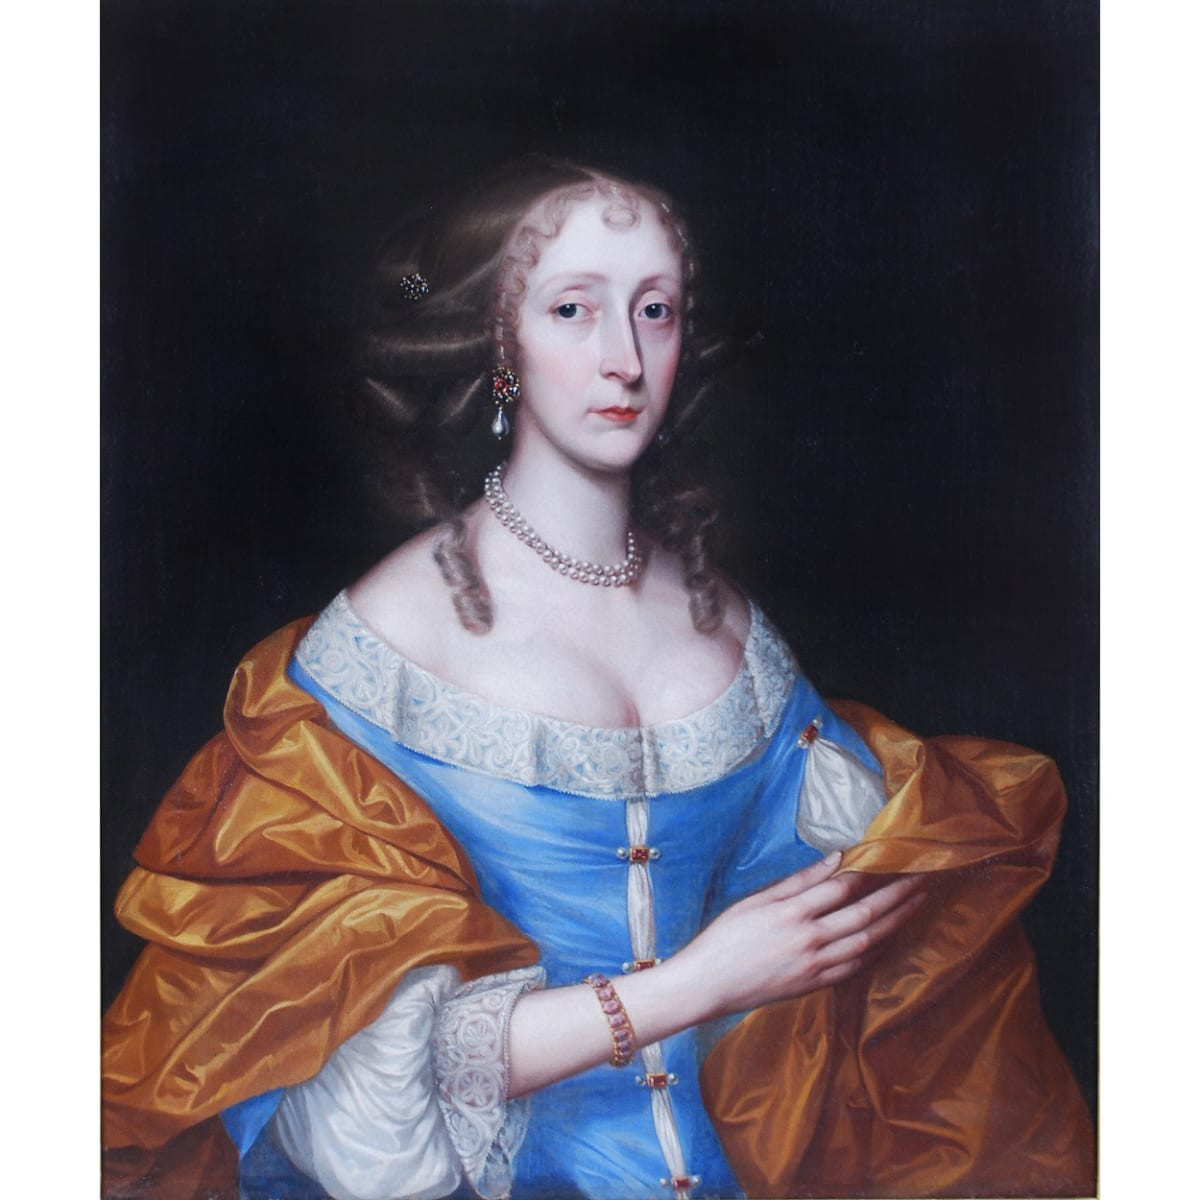 British School, 17th Century Portrait of a Lady, c.1680 oil on canvas 29 1/2 x 25 inches